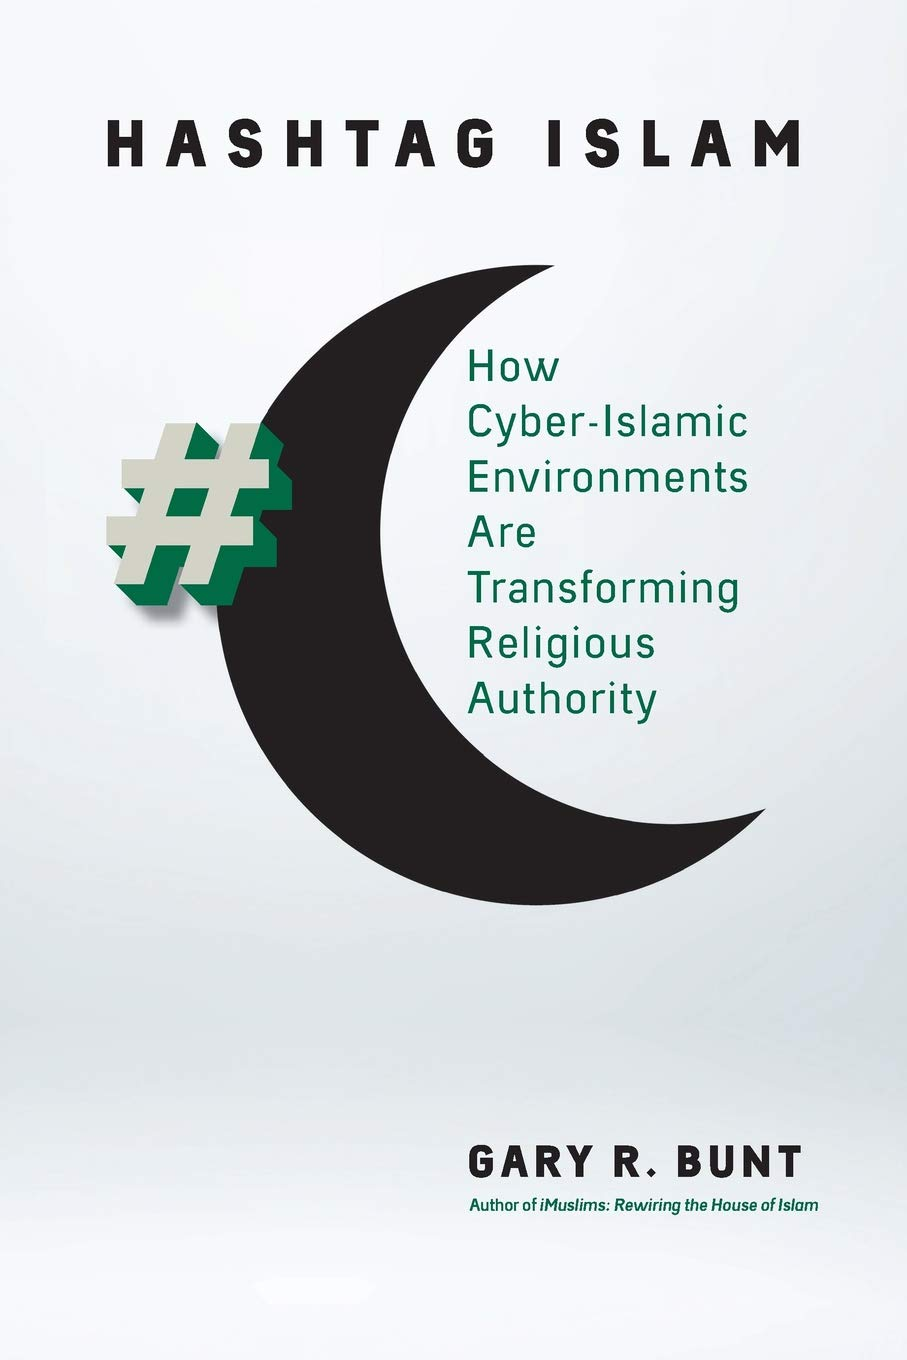 Hashtag Islam How Cyber Islamic Environments Are Transforming